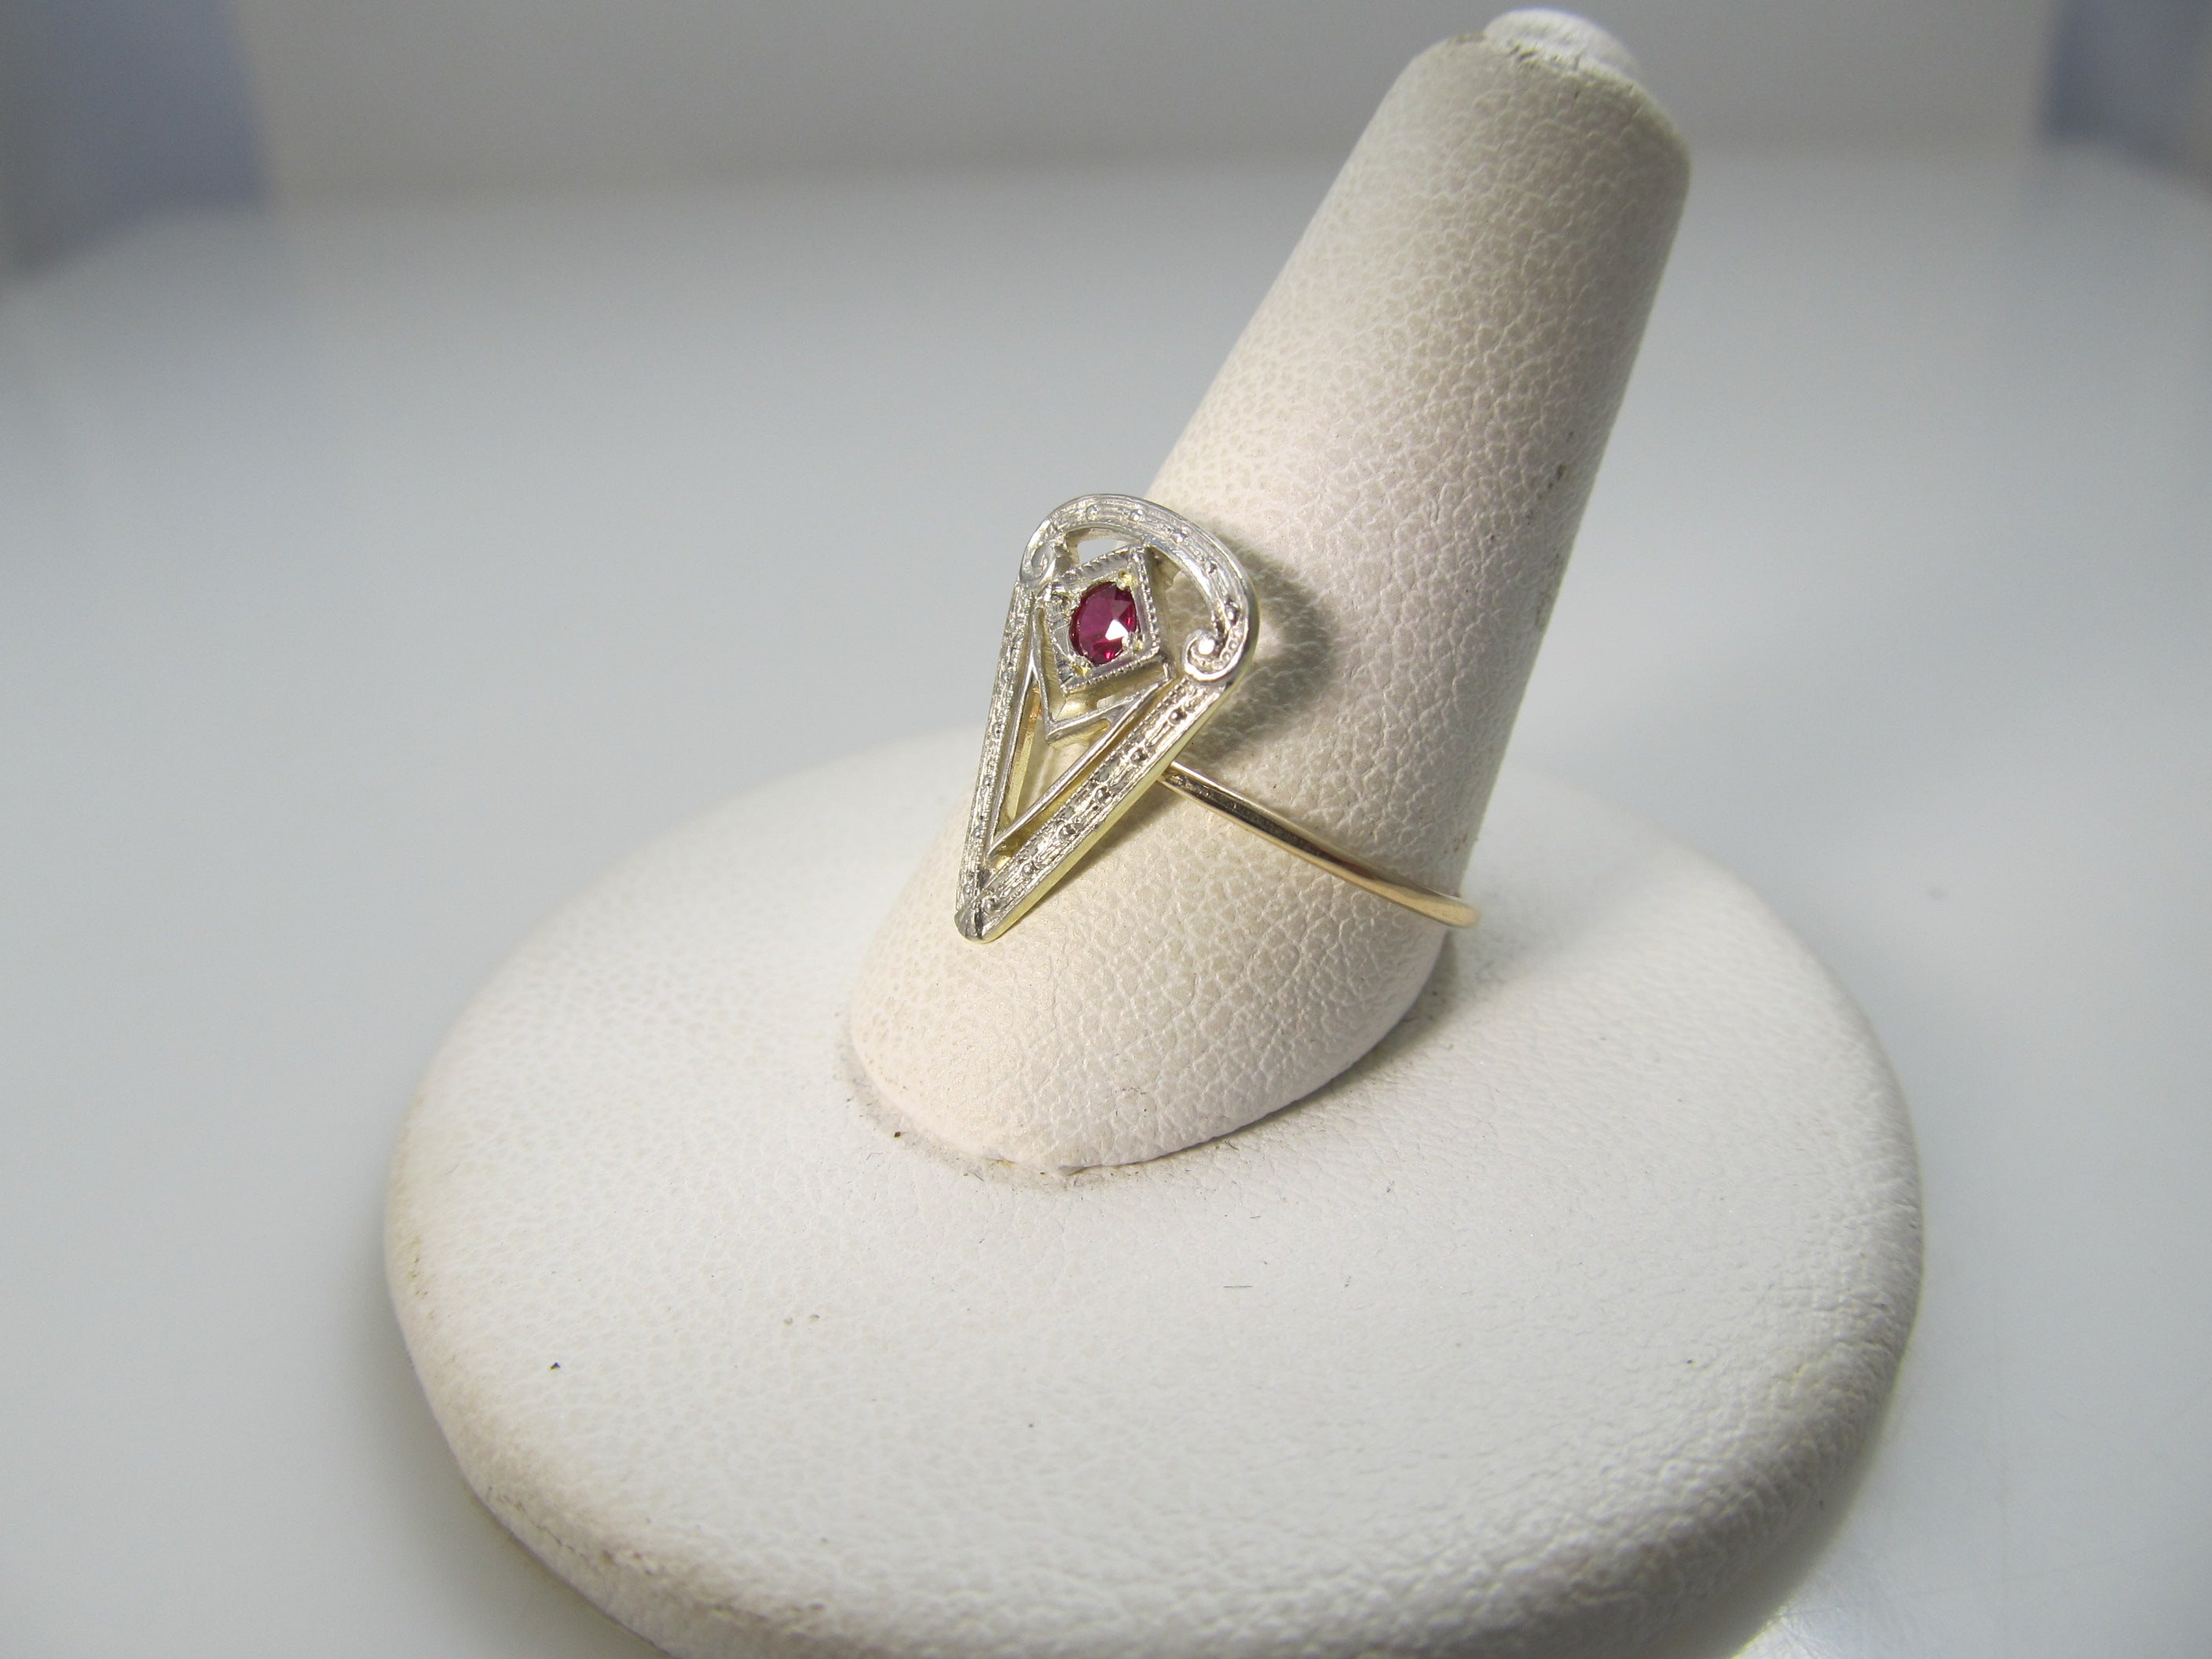 14k white and yellow gold filigree ring with a ruby, circa 1920